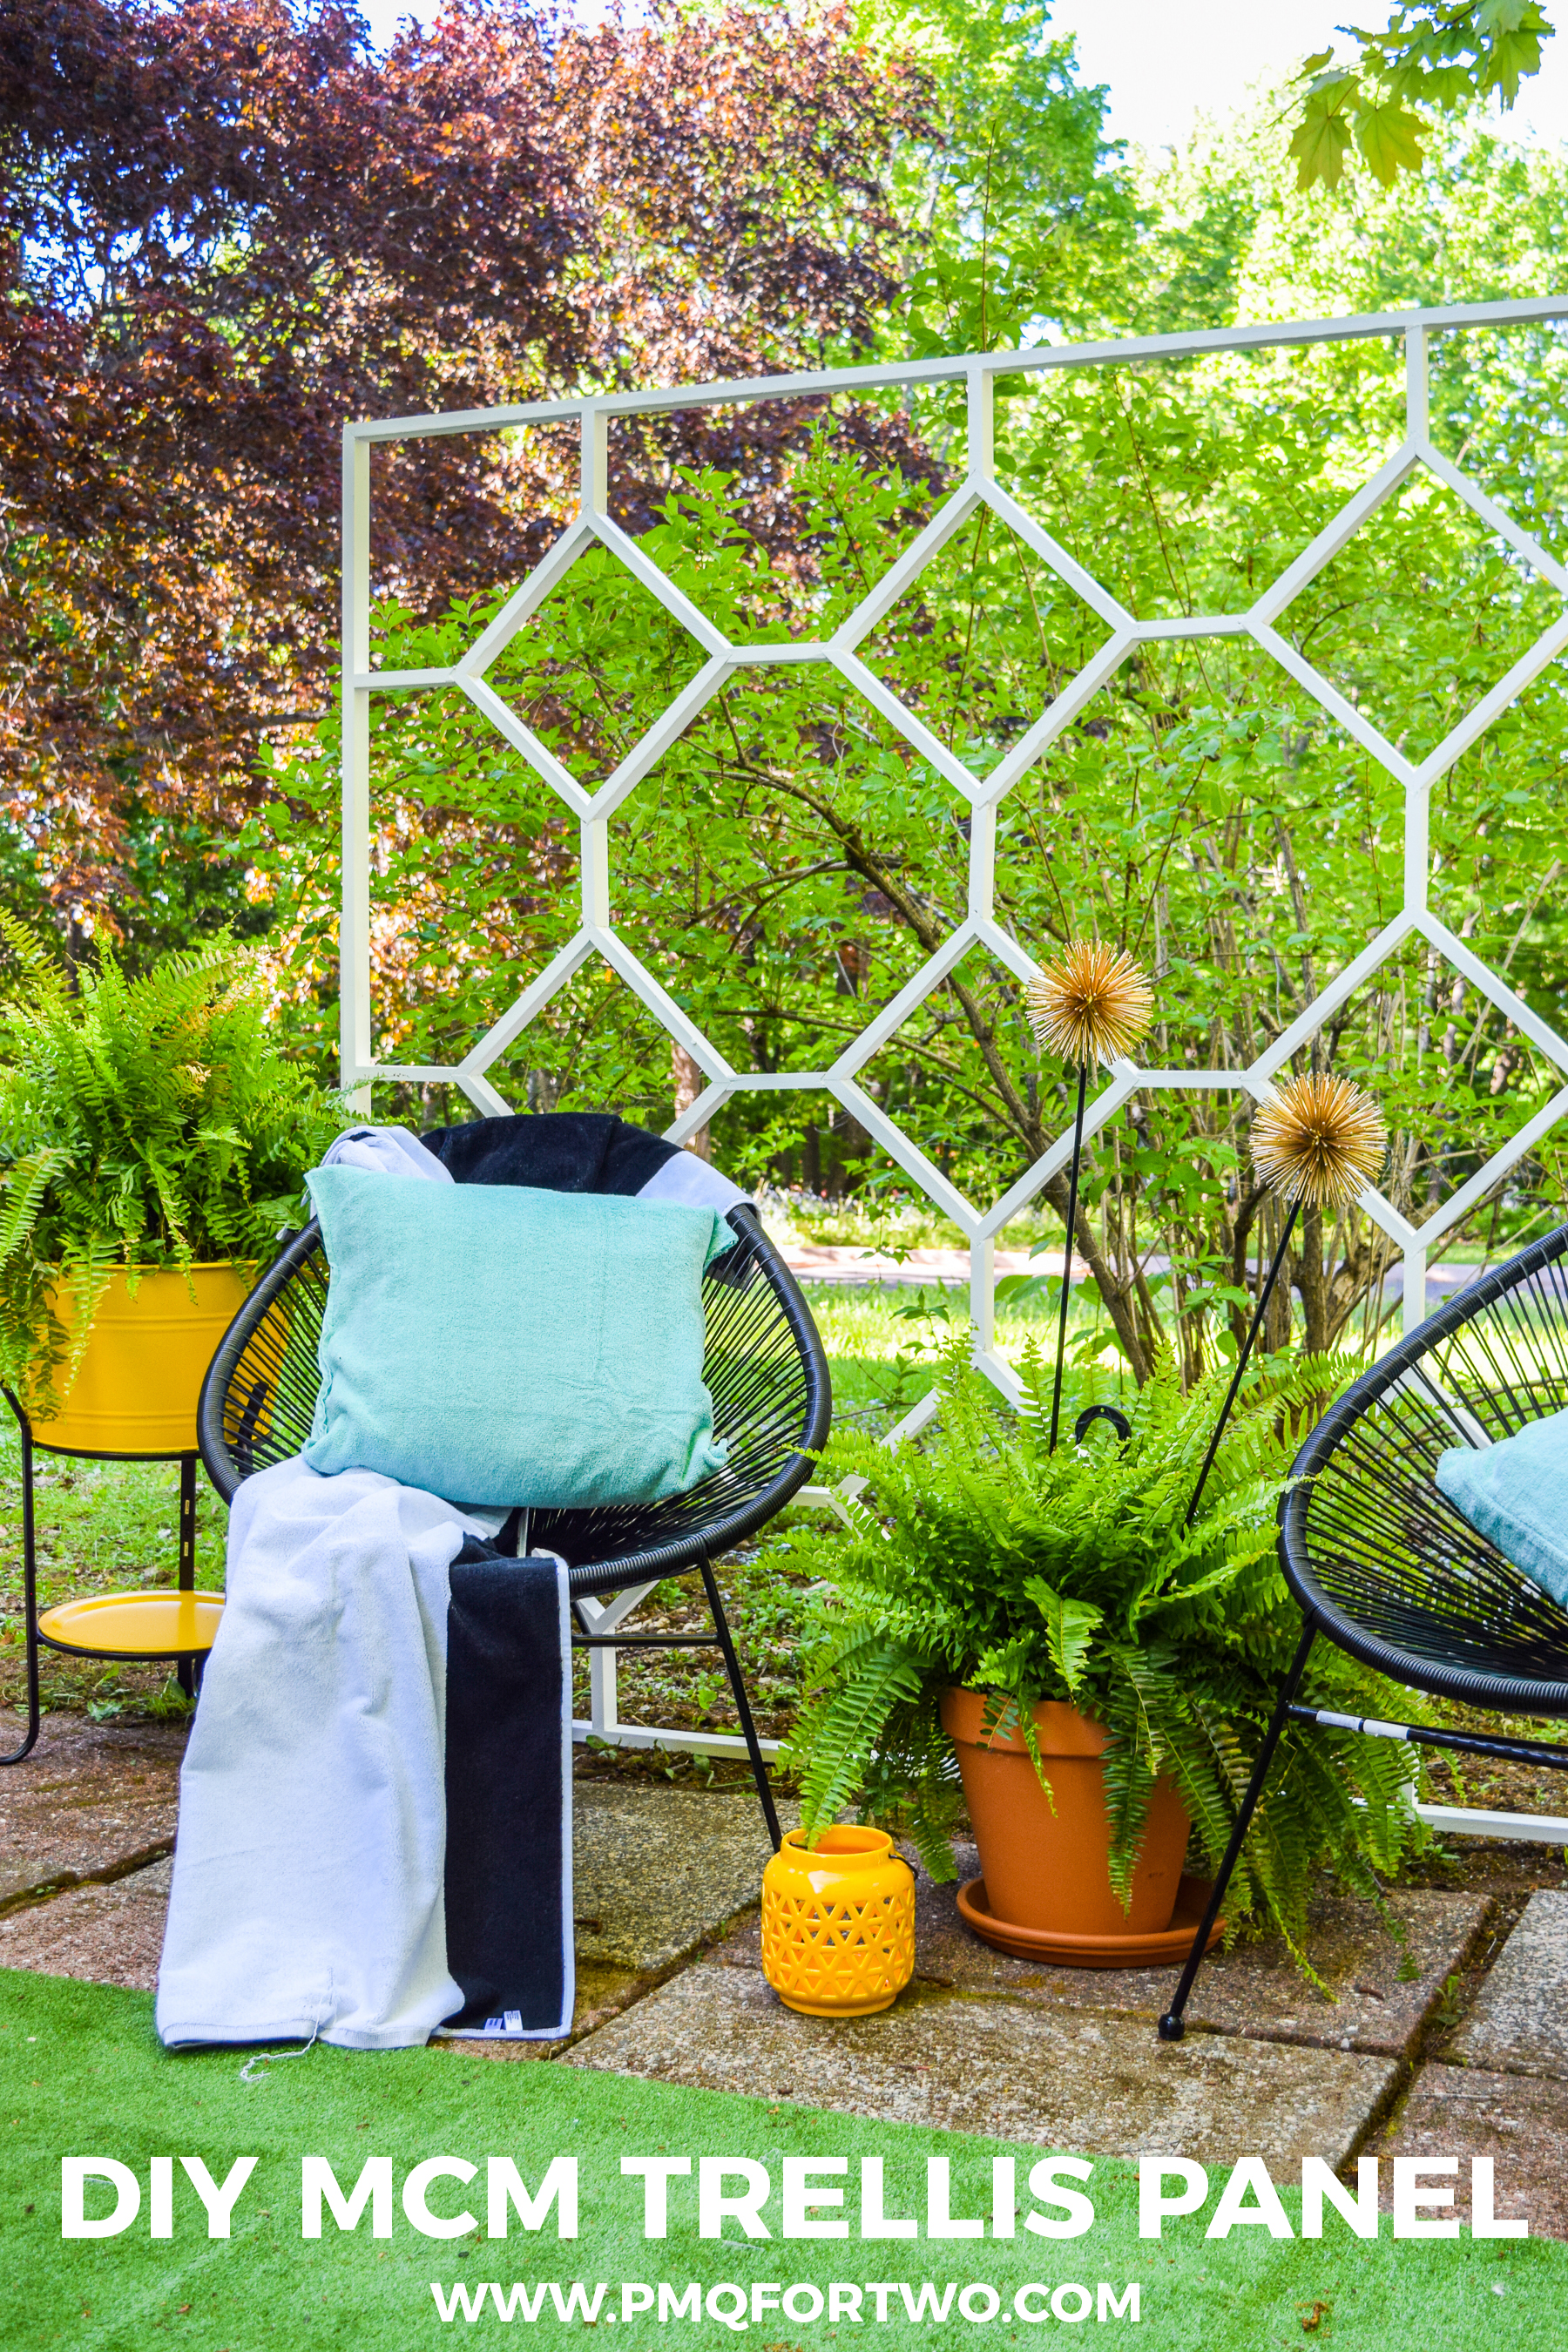 Build a DIY MCM Trellis Panel using materials from your local Home Depot, and finish with Behr's outdoor paint. Grab the tutorial and cut list on the blog!